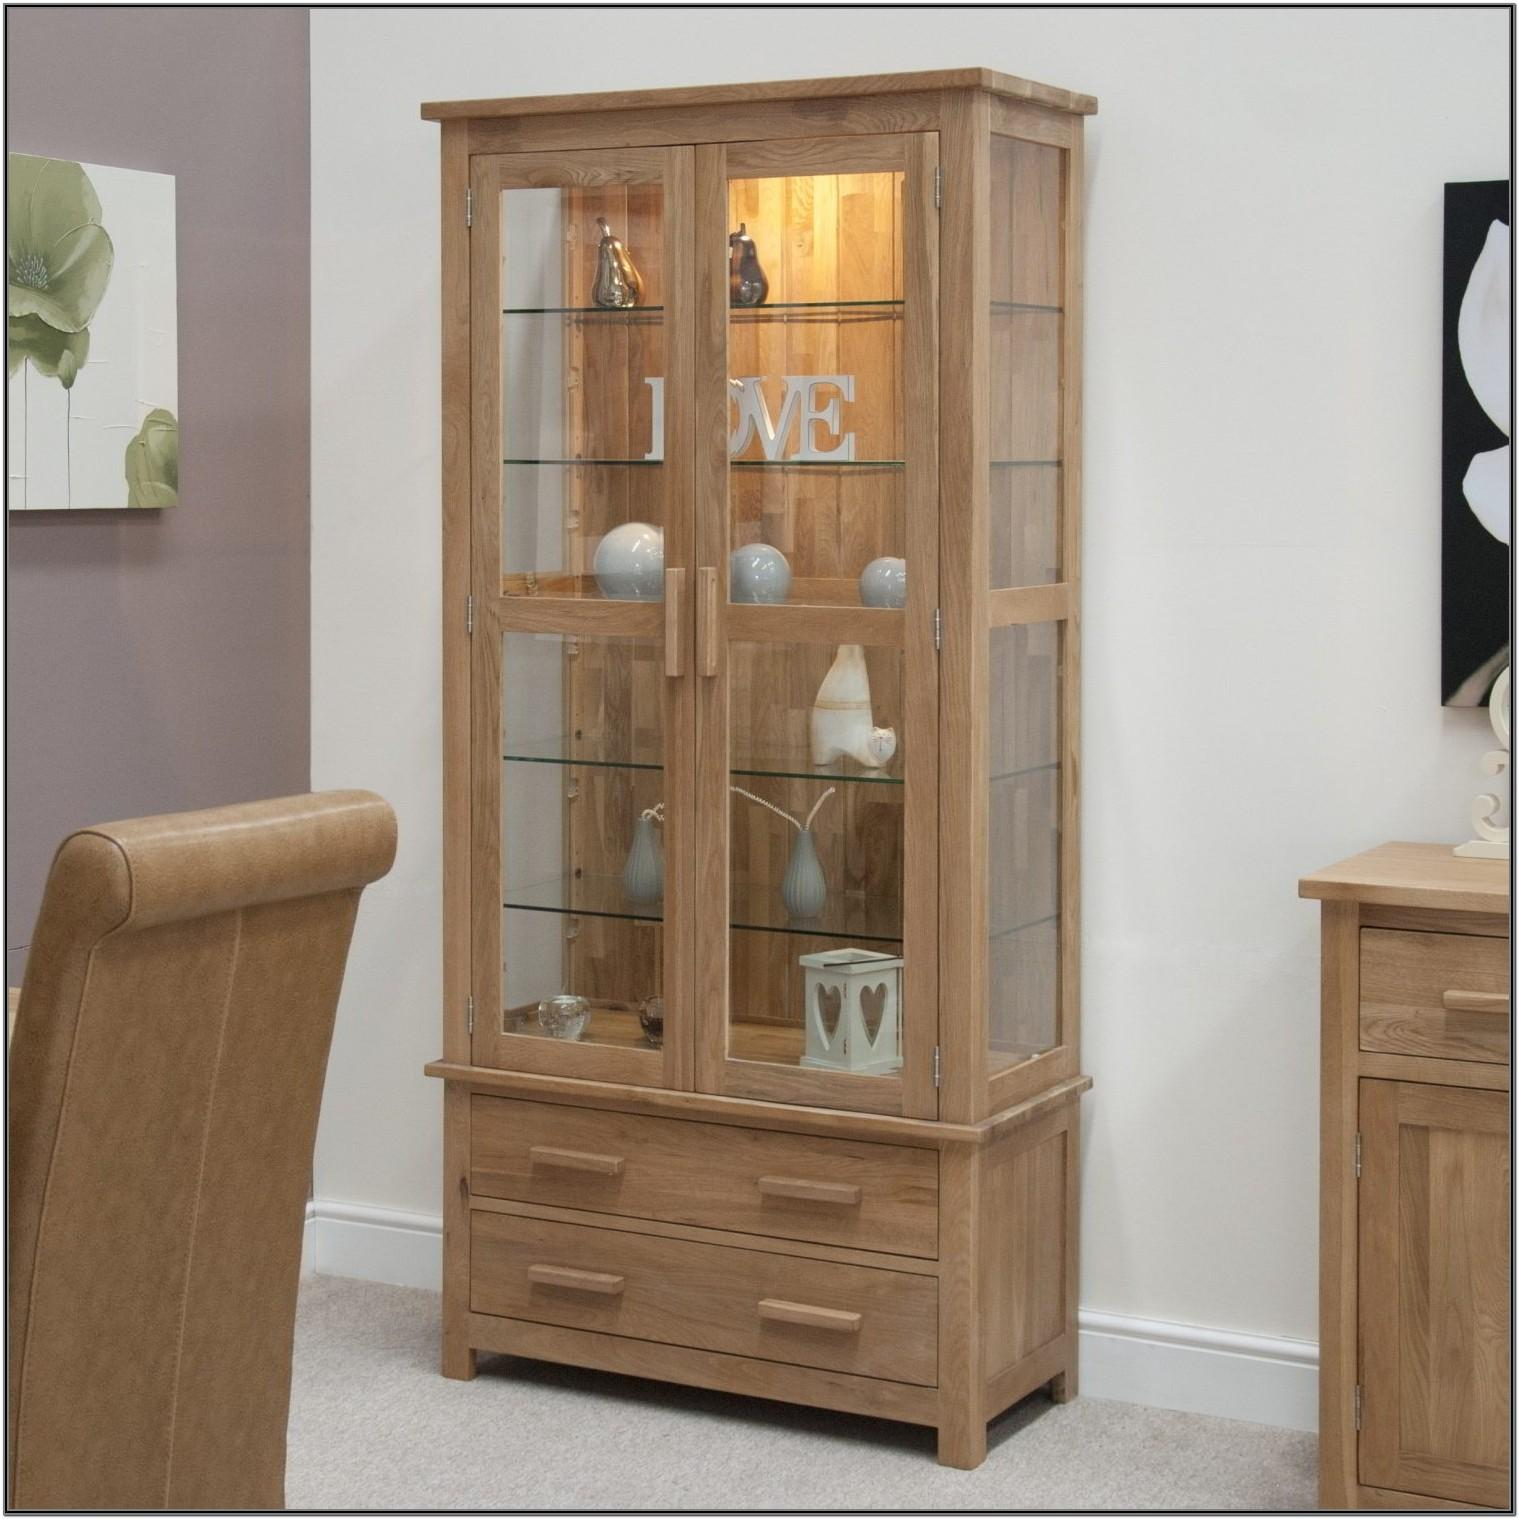 Living Room Display Cabinet Ideas